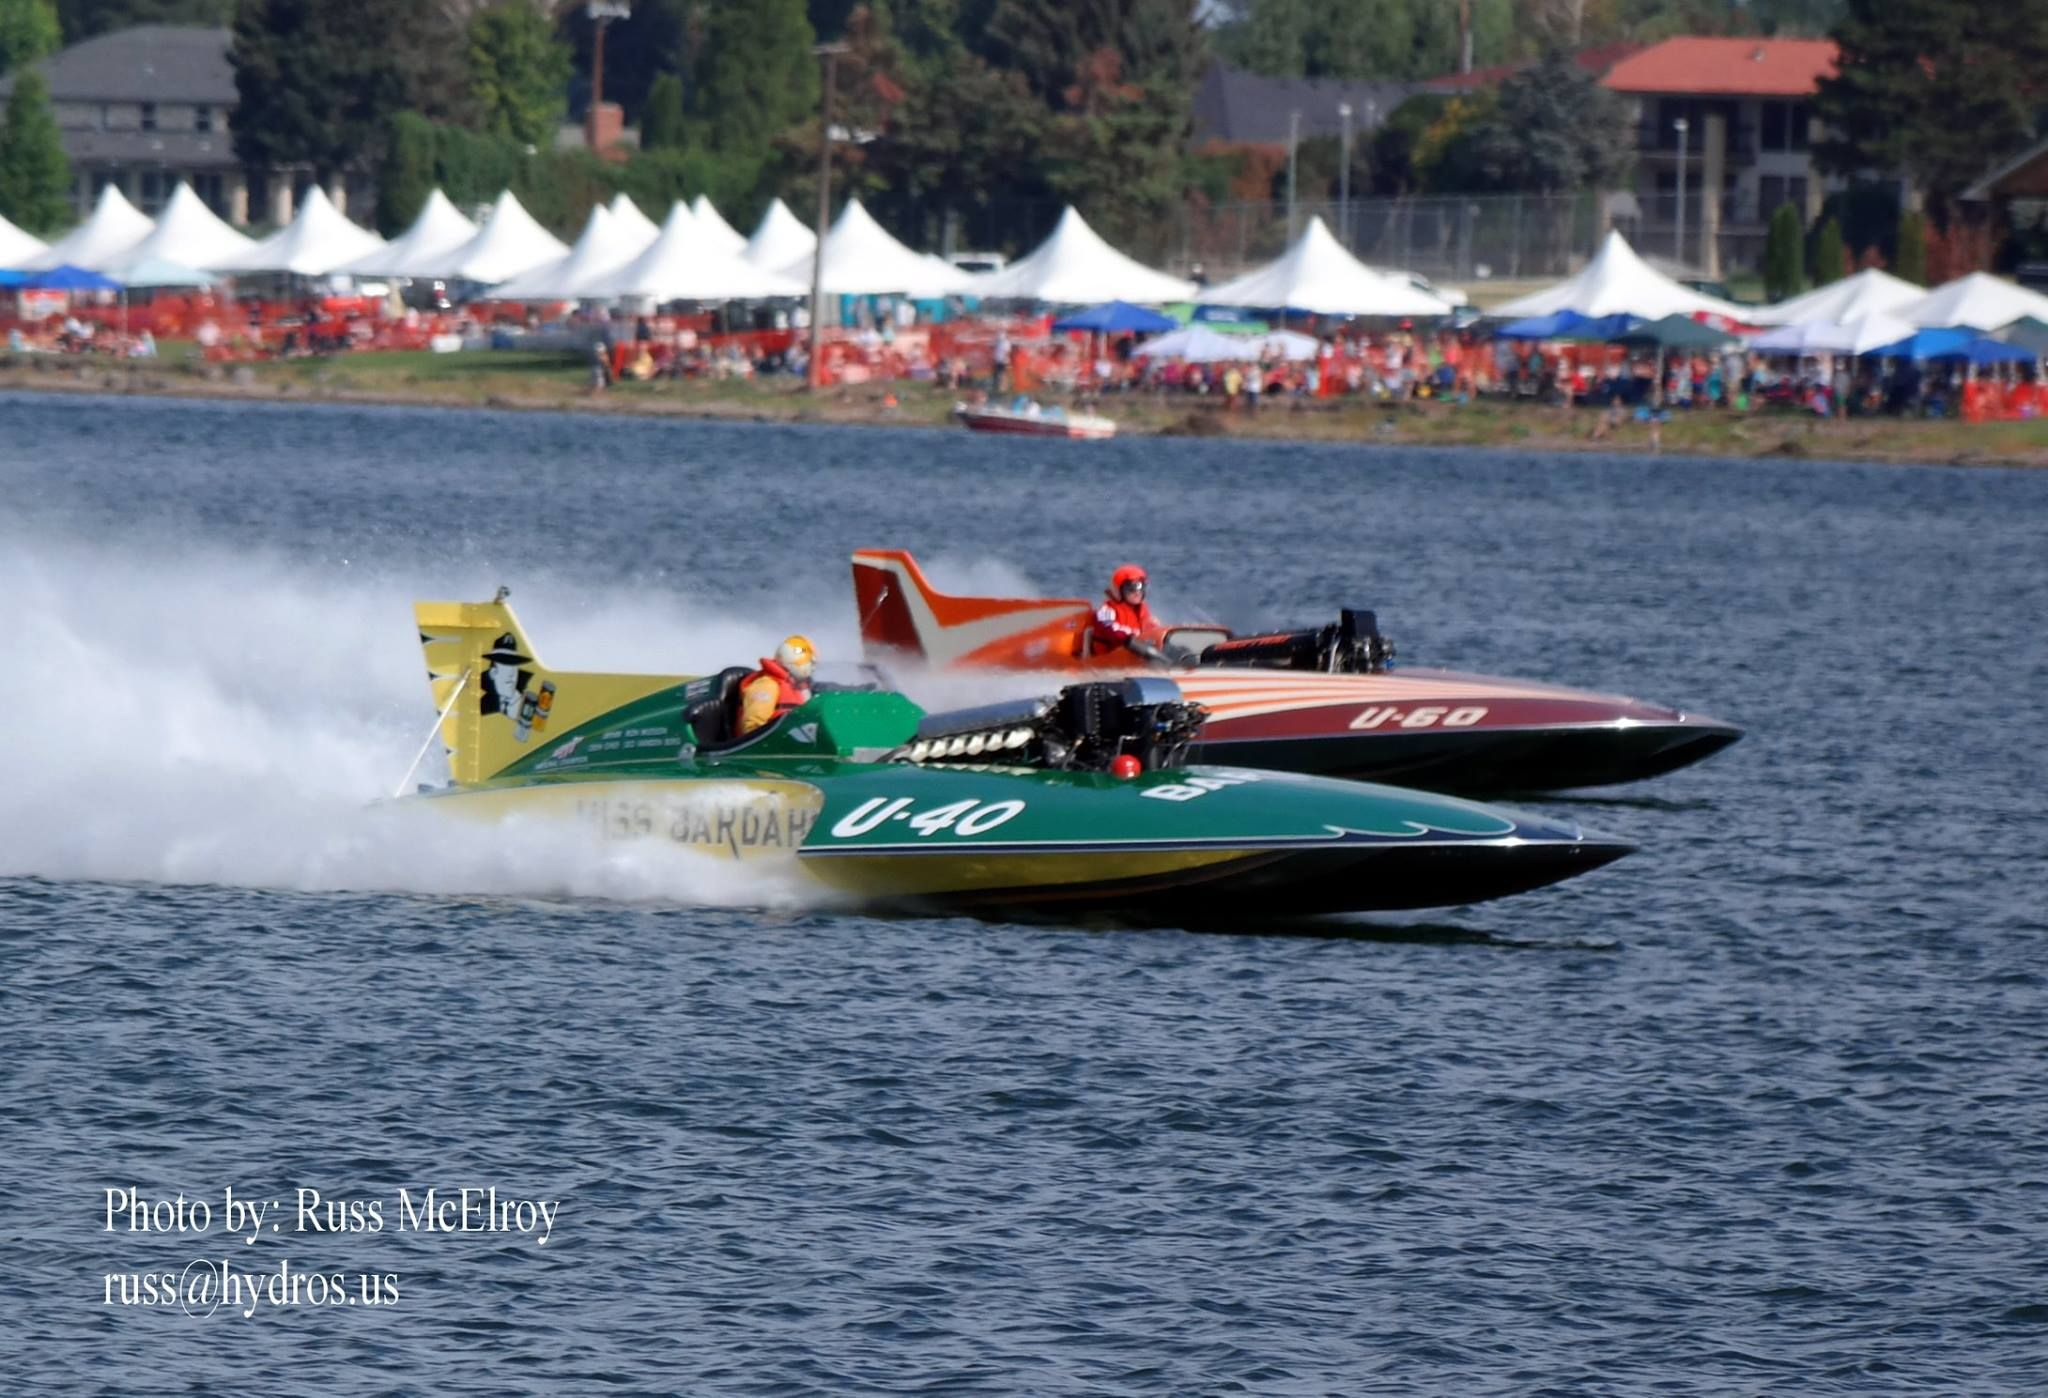 Pin by Frank Vella on Favorite boats Hydroplane, Classic